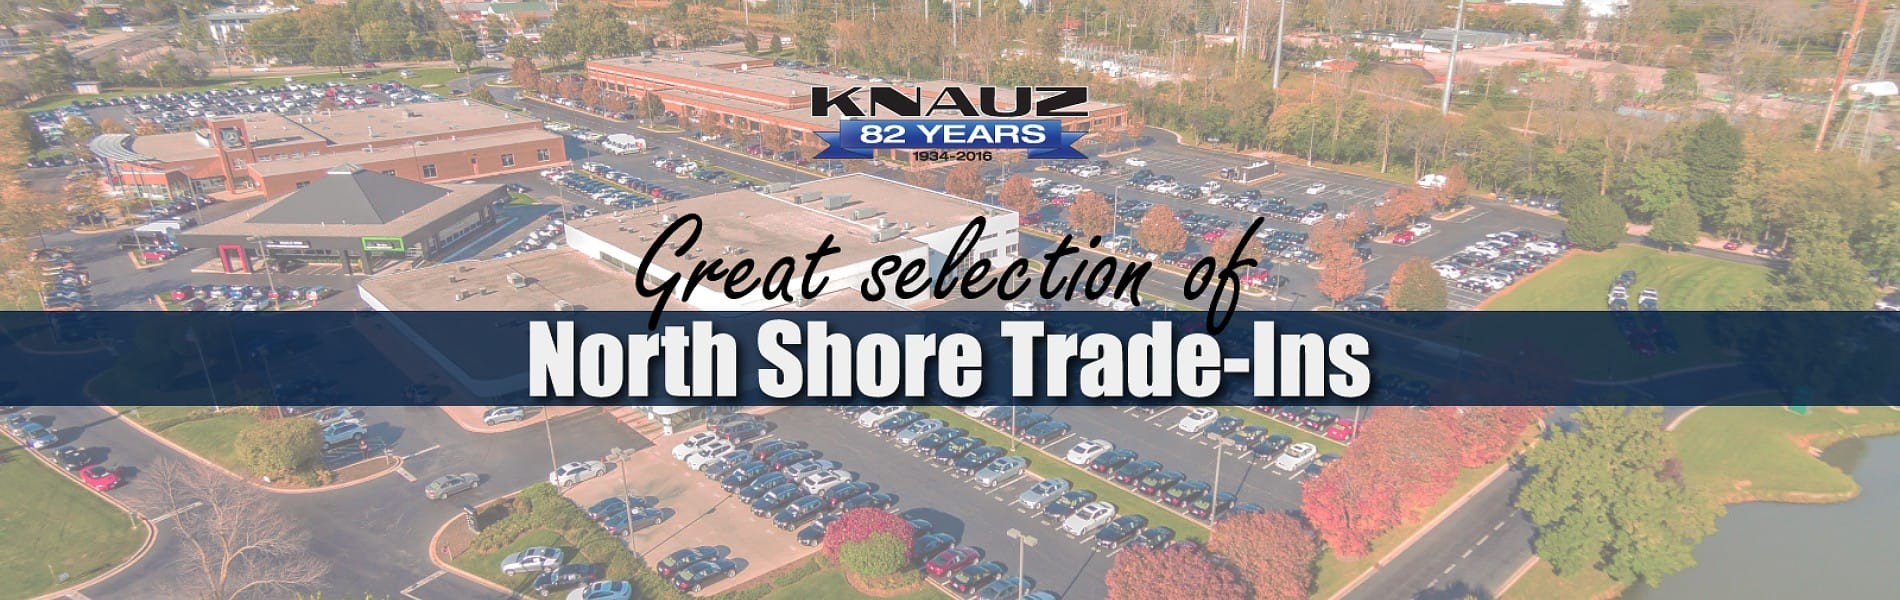 Knauz North Shore Trade-ins